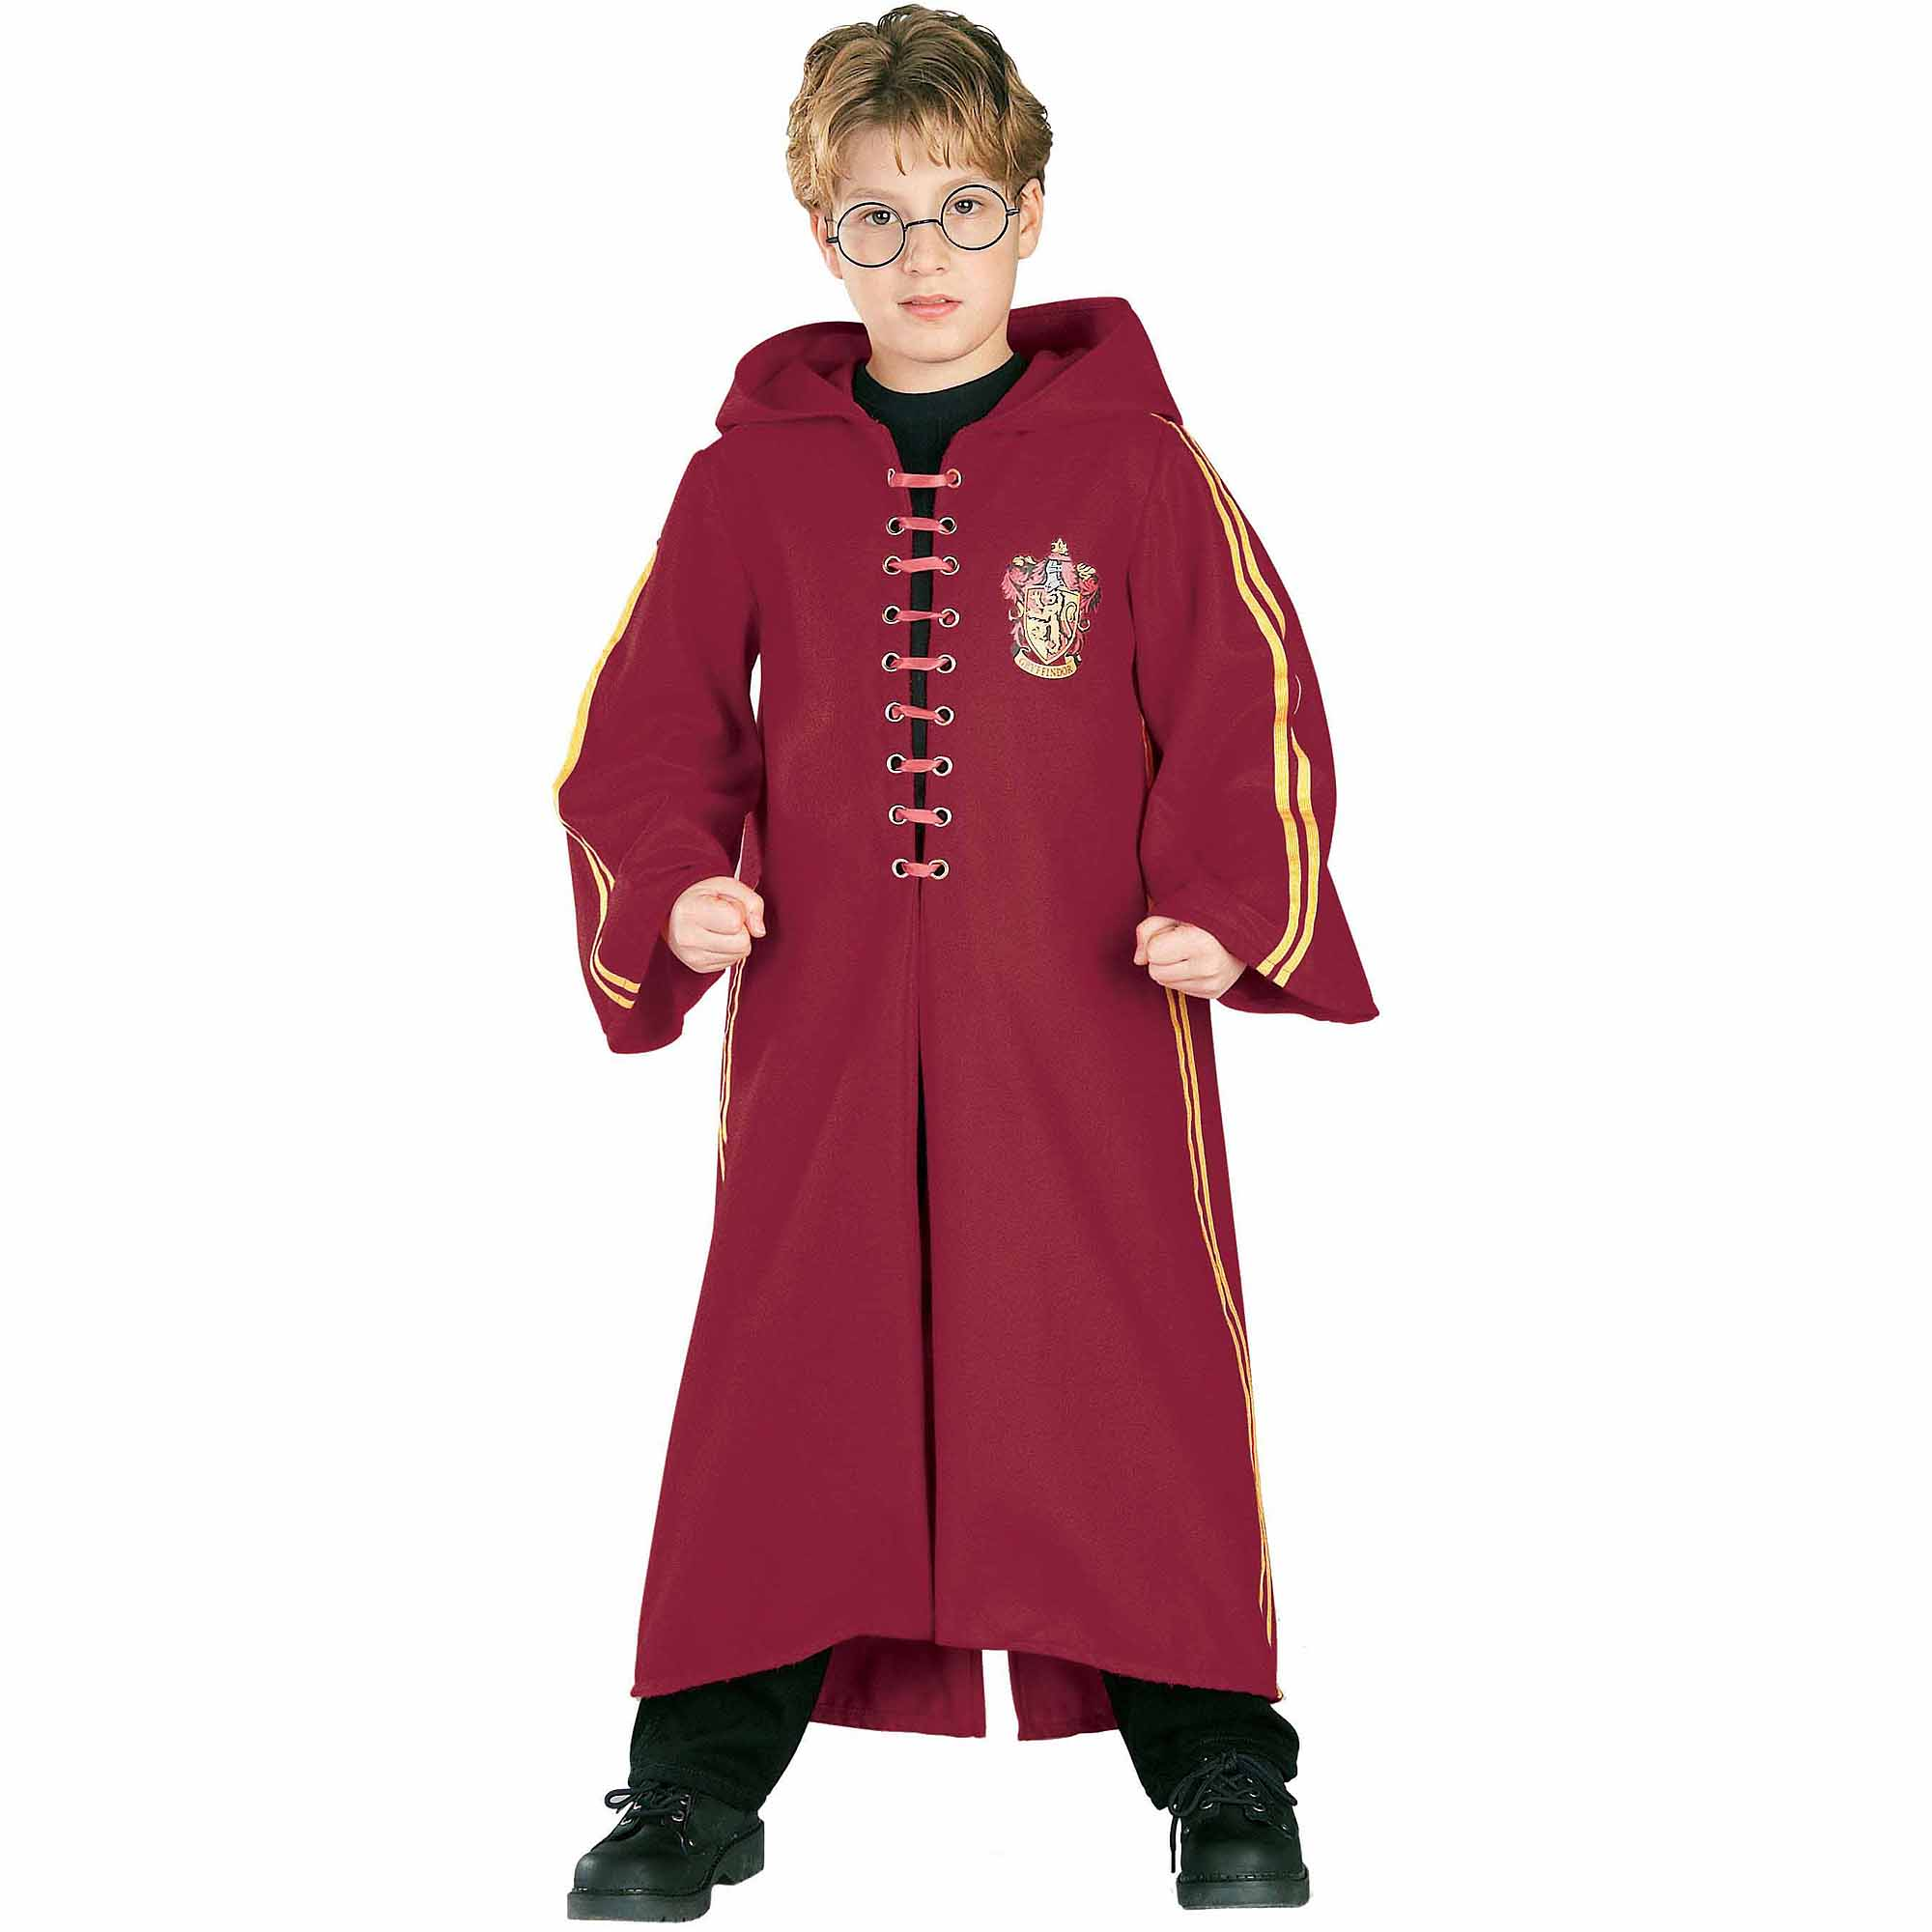 Harry Potter Quidditch Robe Super Deluxe Child Halloween Costume by Generic